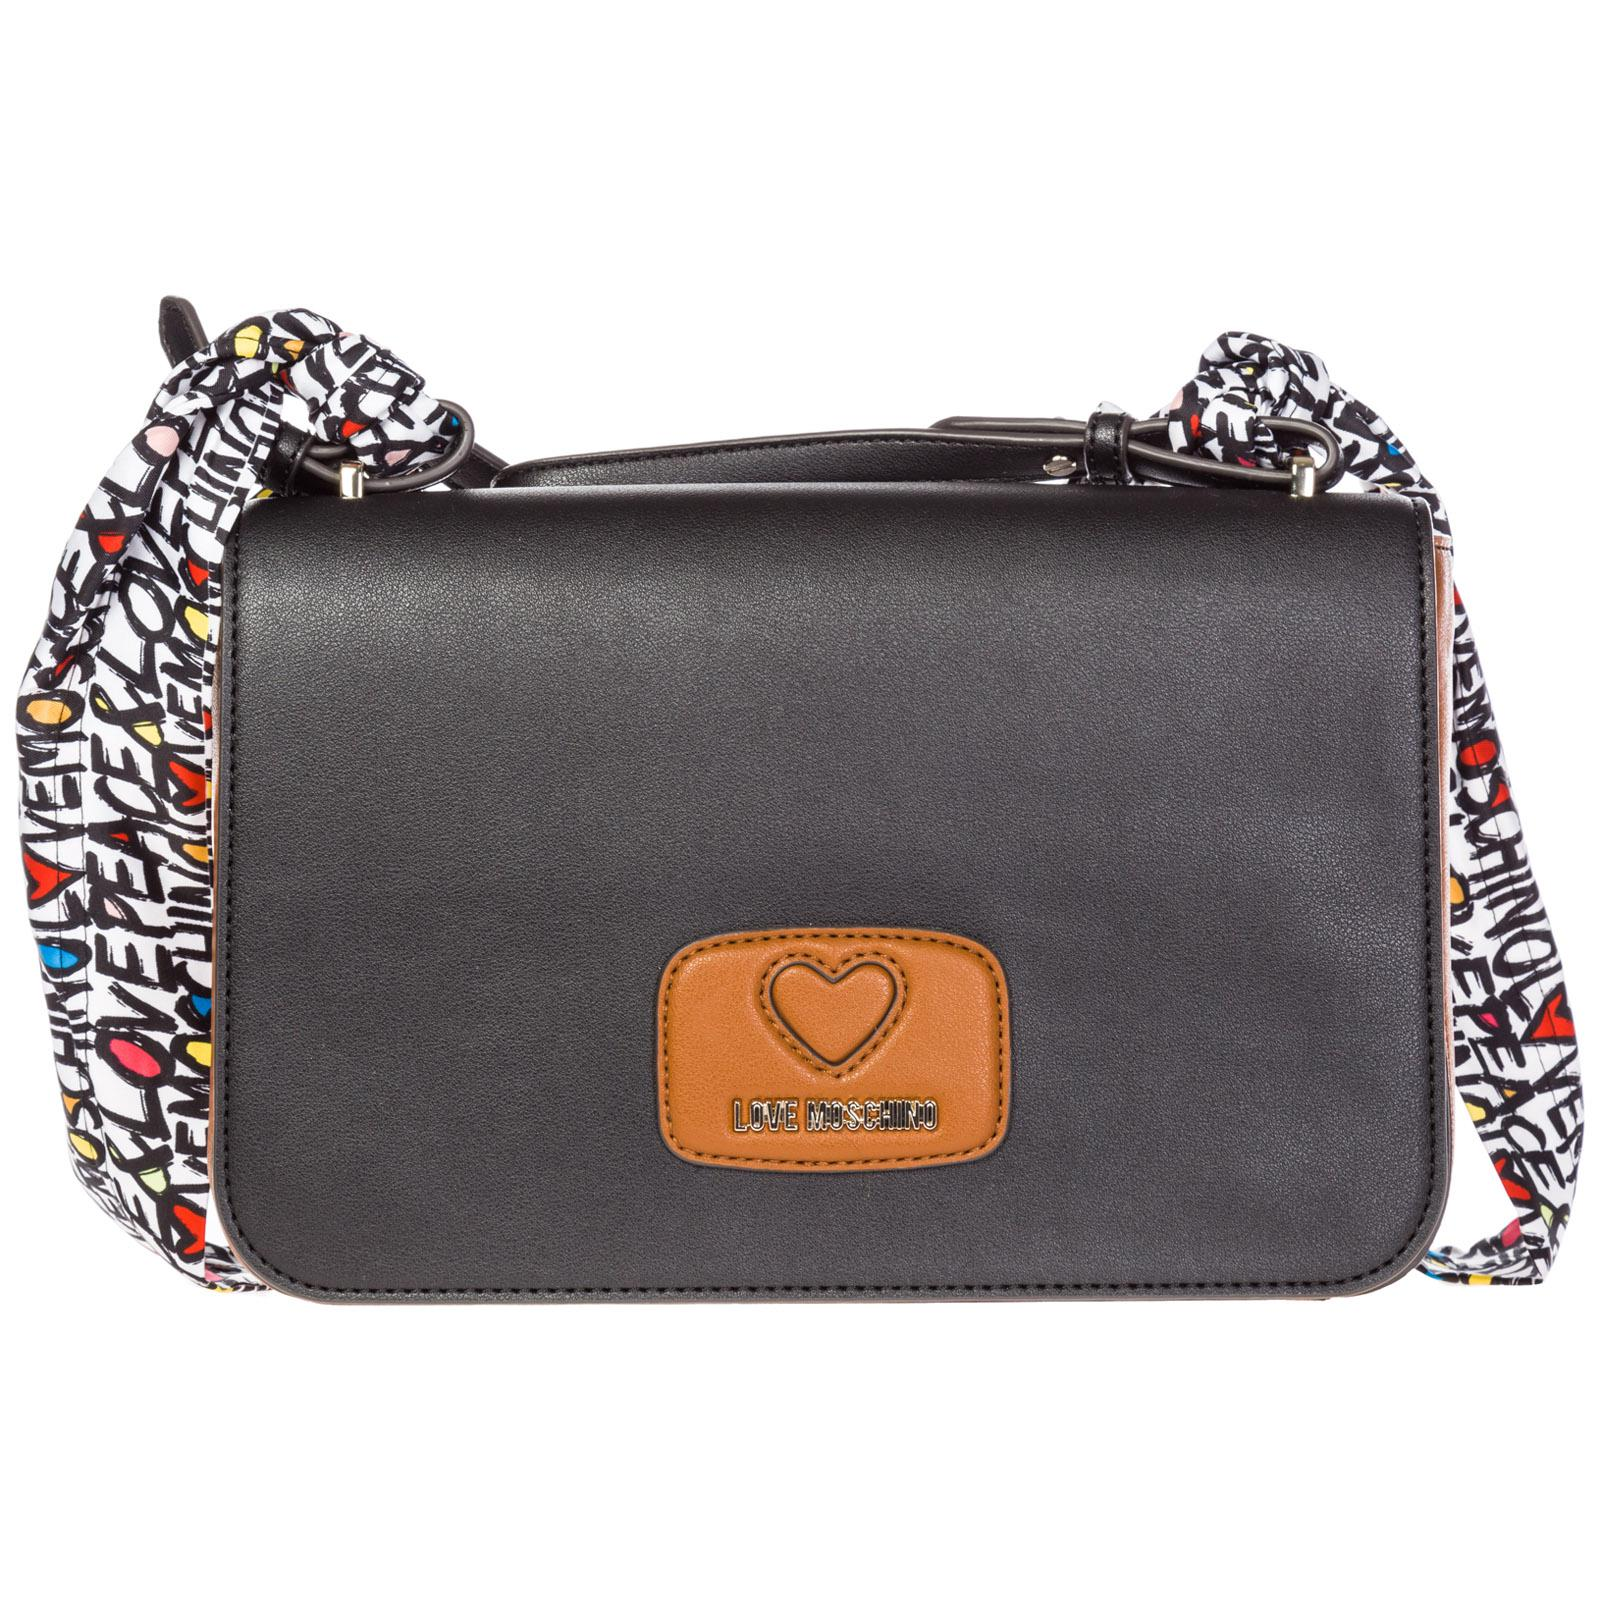 Love Moschino - Black Shoulder Bag - Lyst. View fullscreen 6937e2f685b